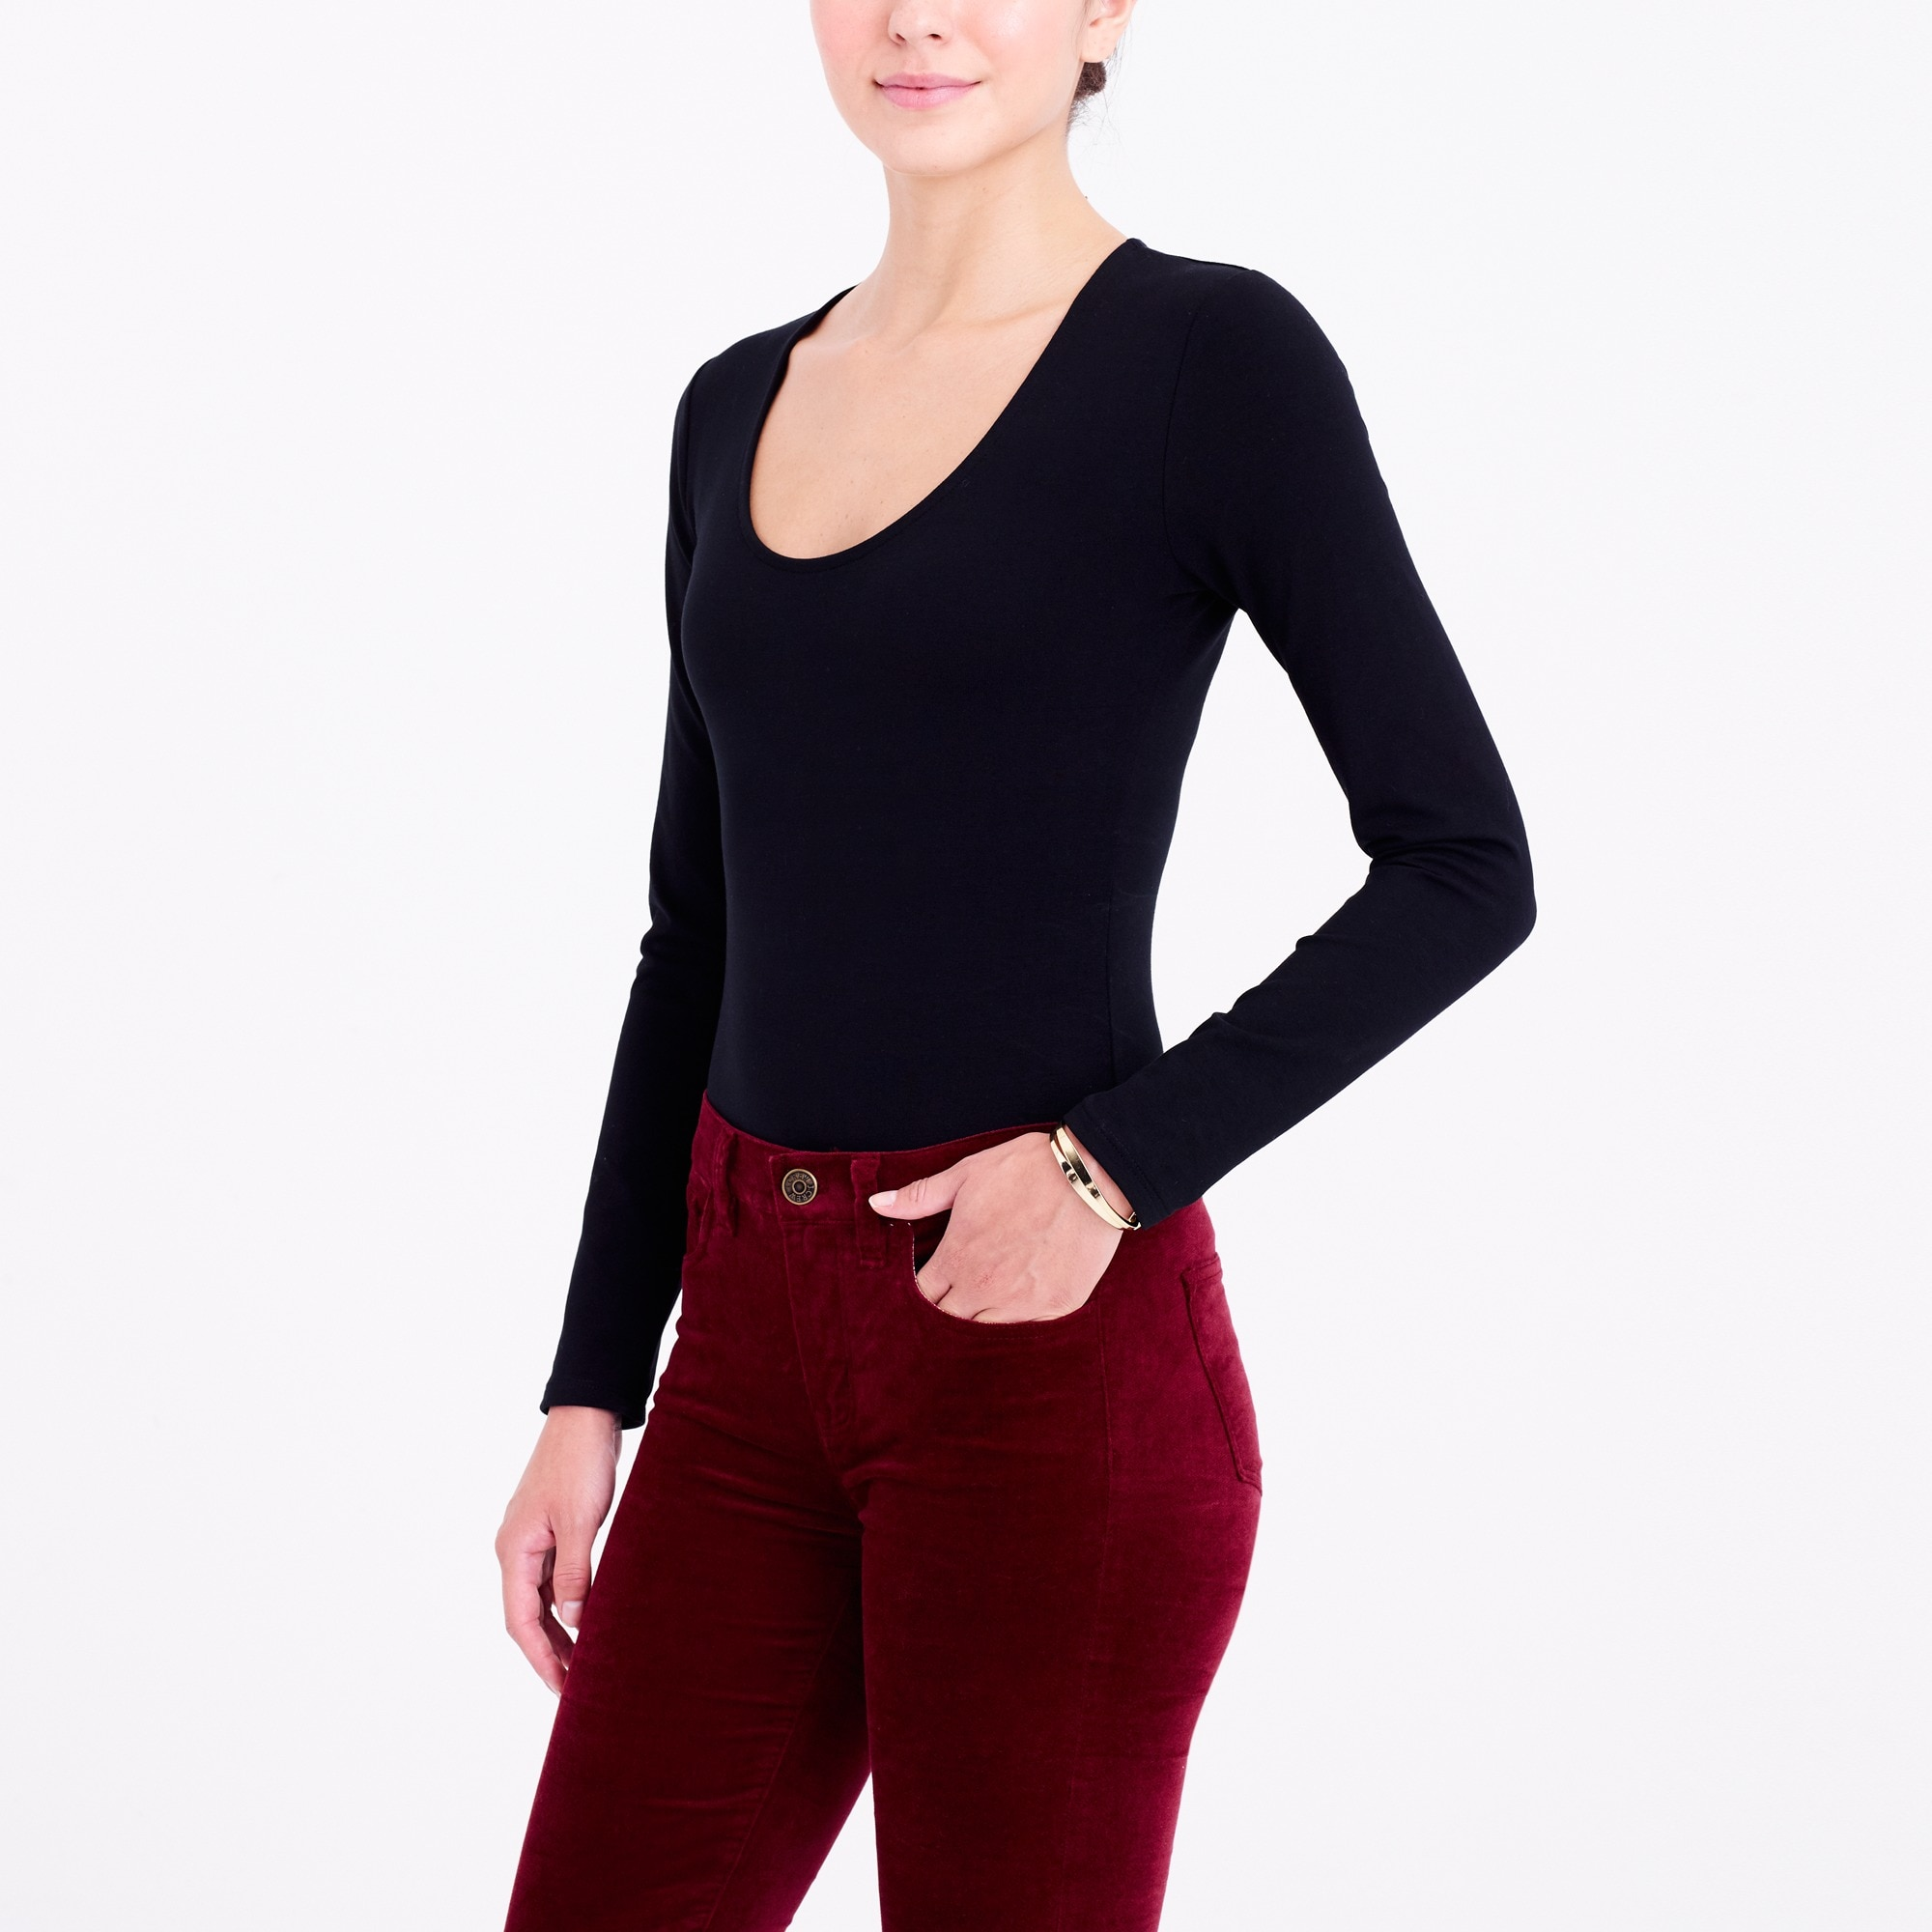 long-sleeve bodysuit : factorywomen long sleeve